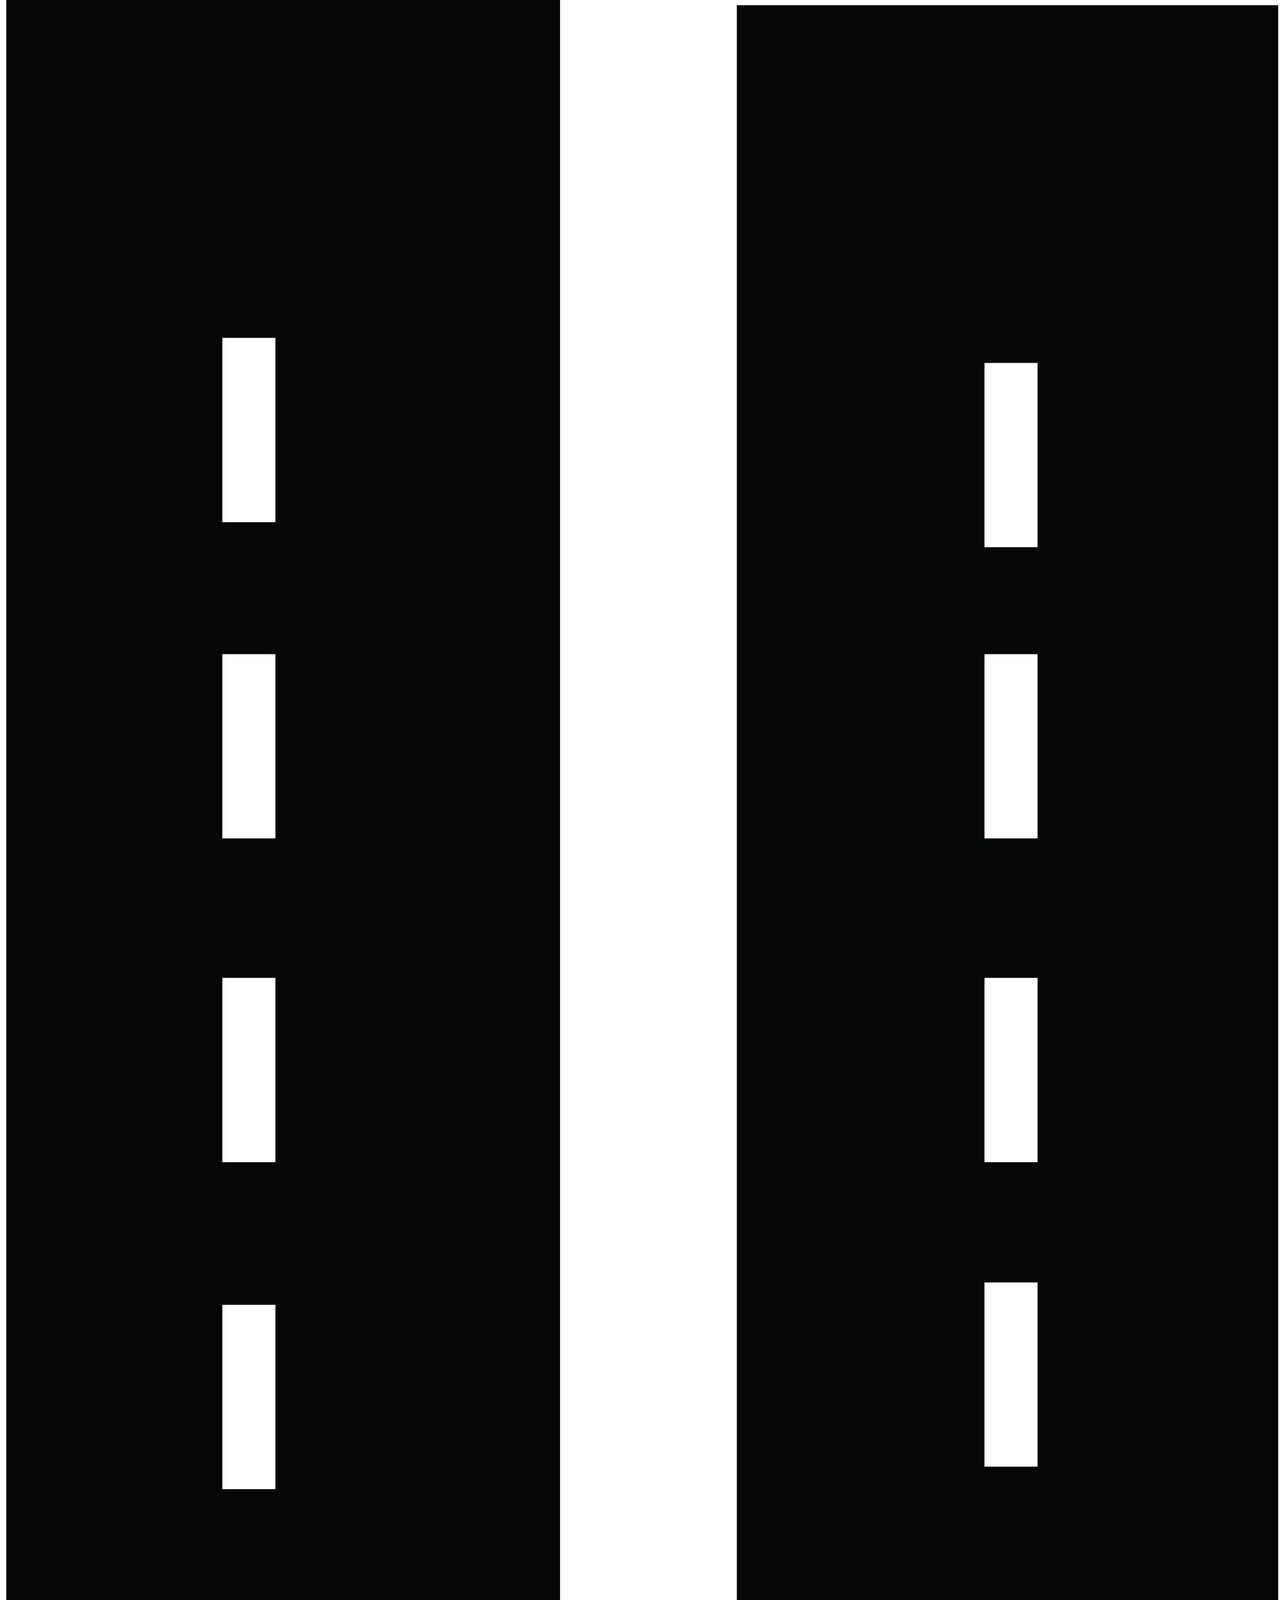 Straight road clipart 20 free Cliparts | Download images ...